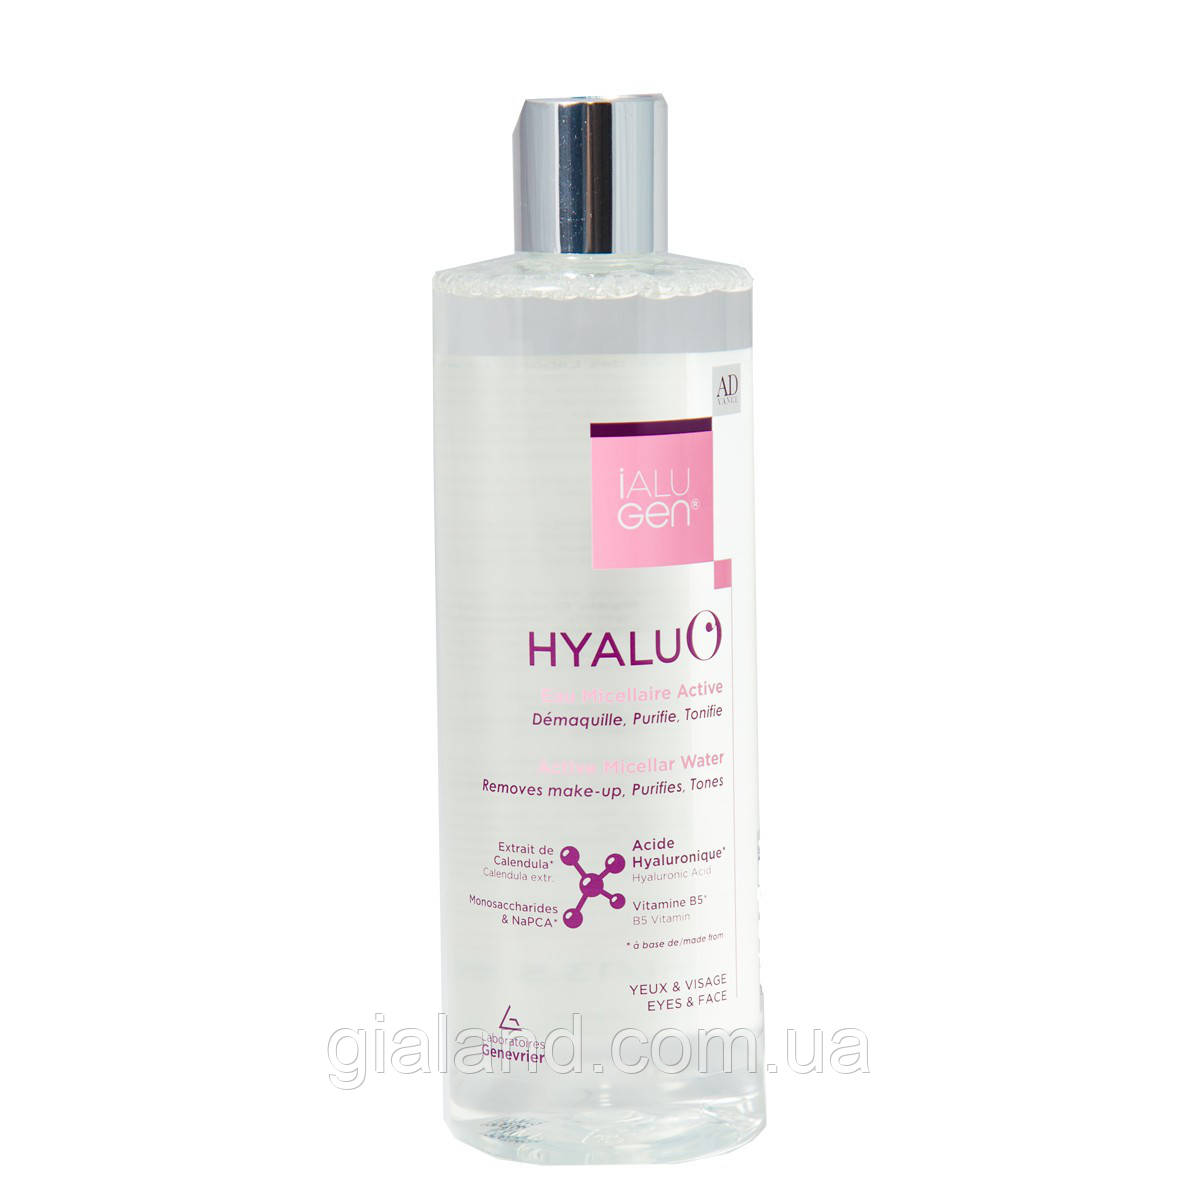 Ialugen Advance HYALU'O ACTIVE micellar Мицеллярная вода